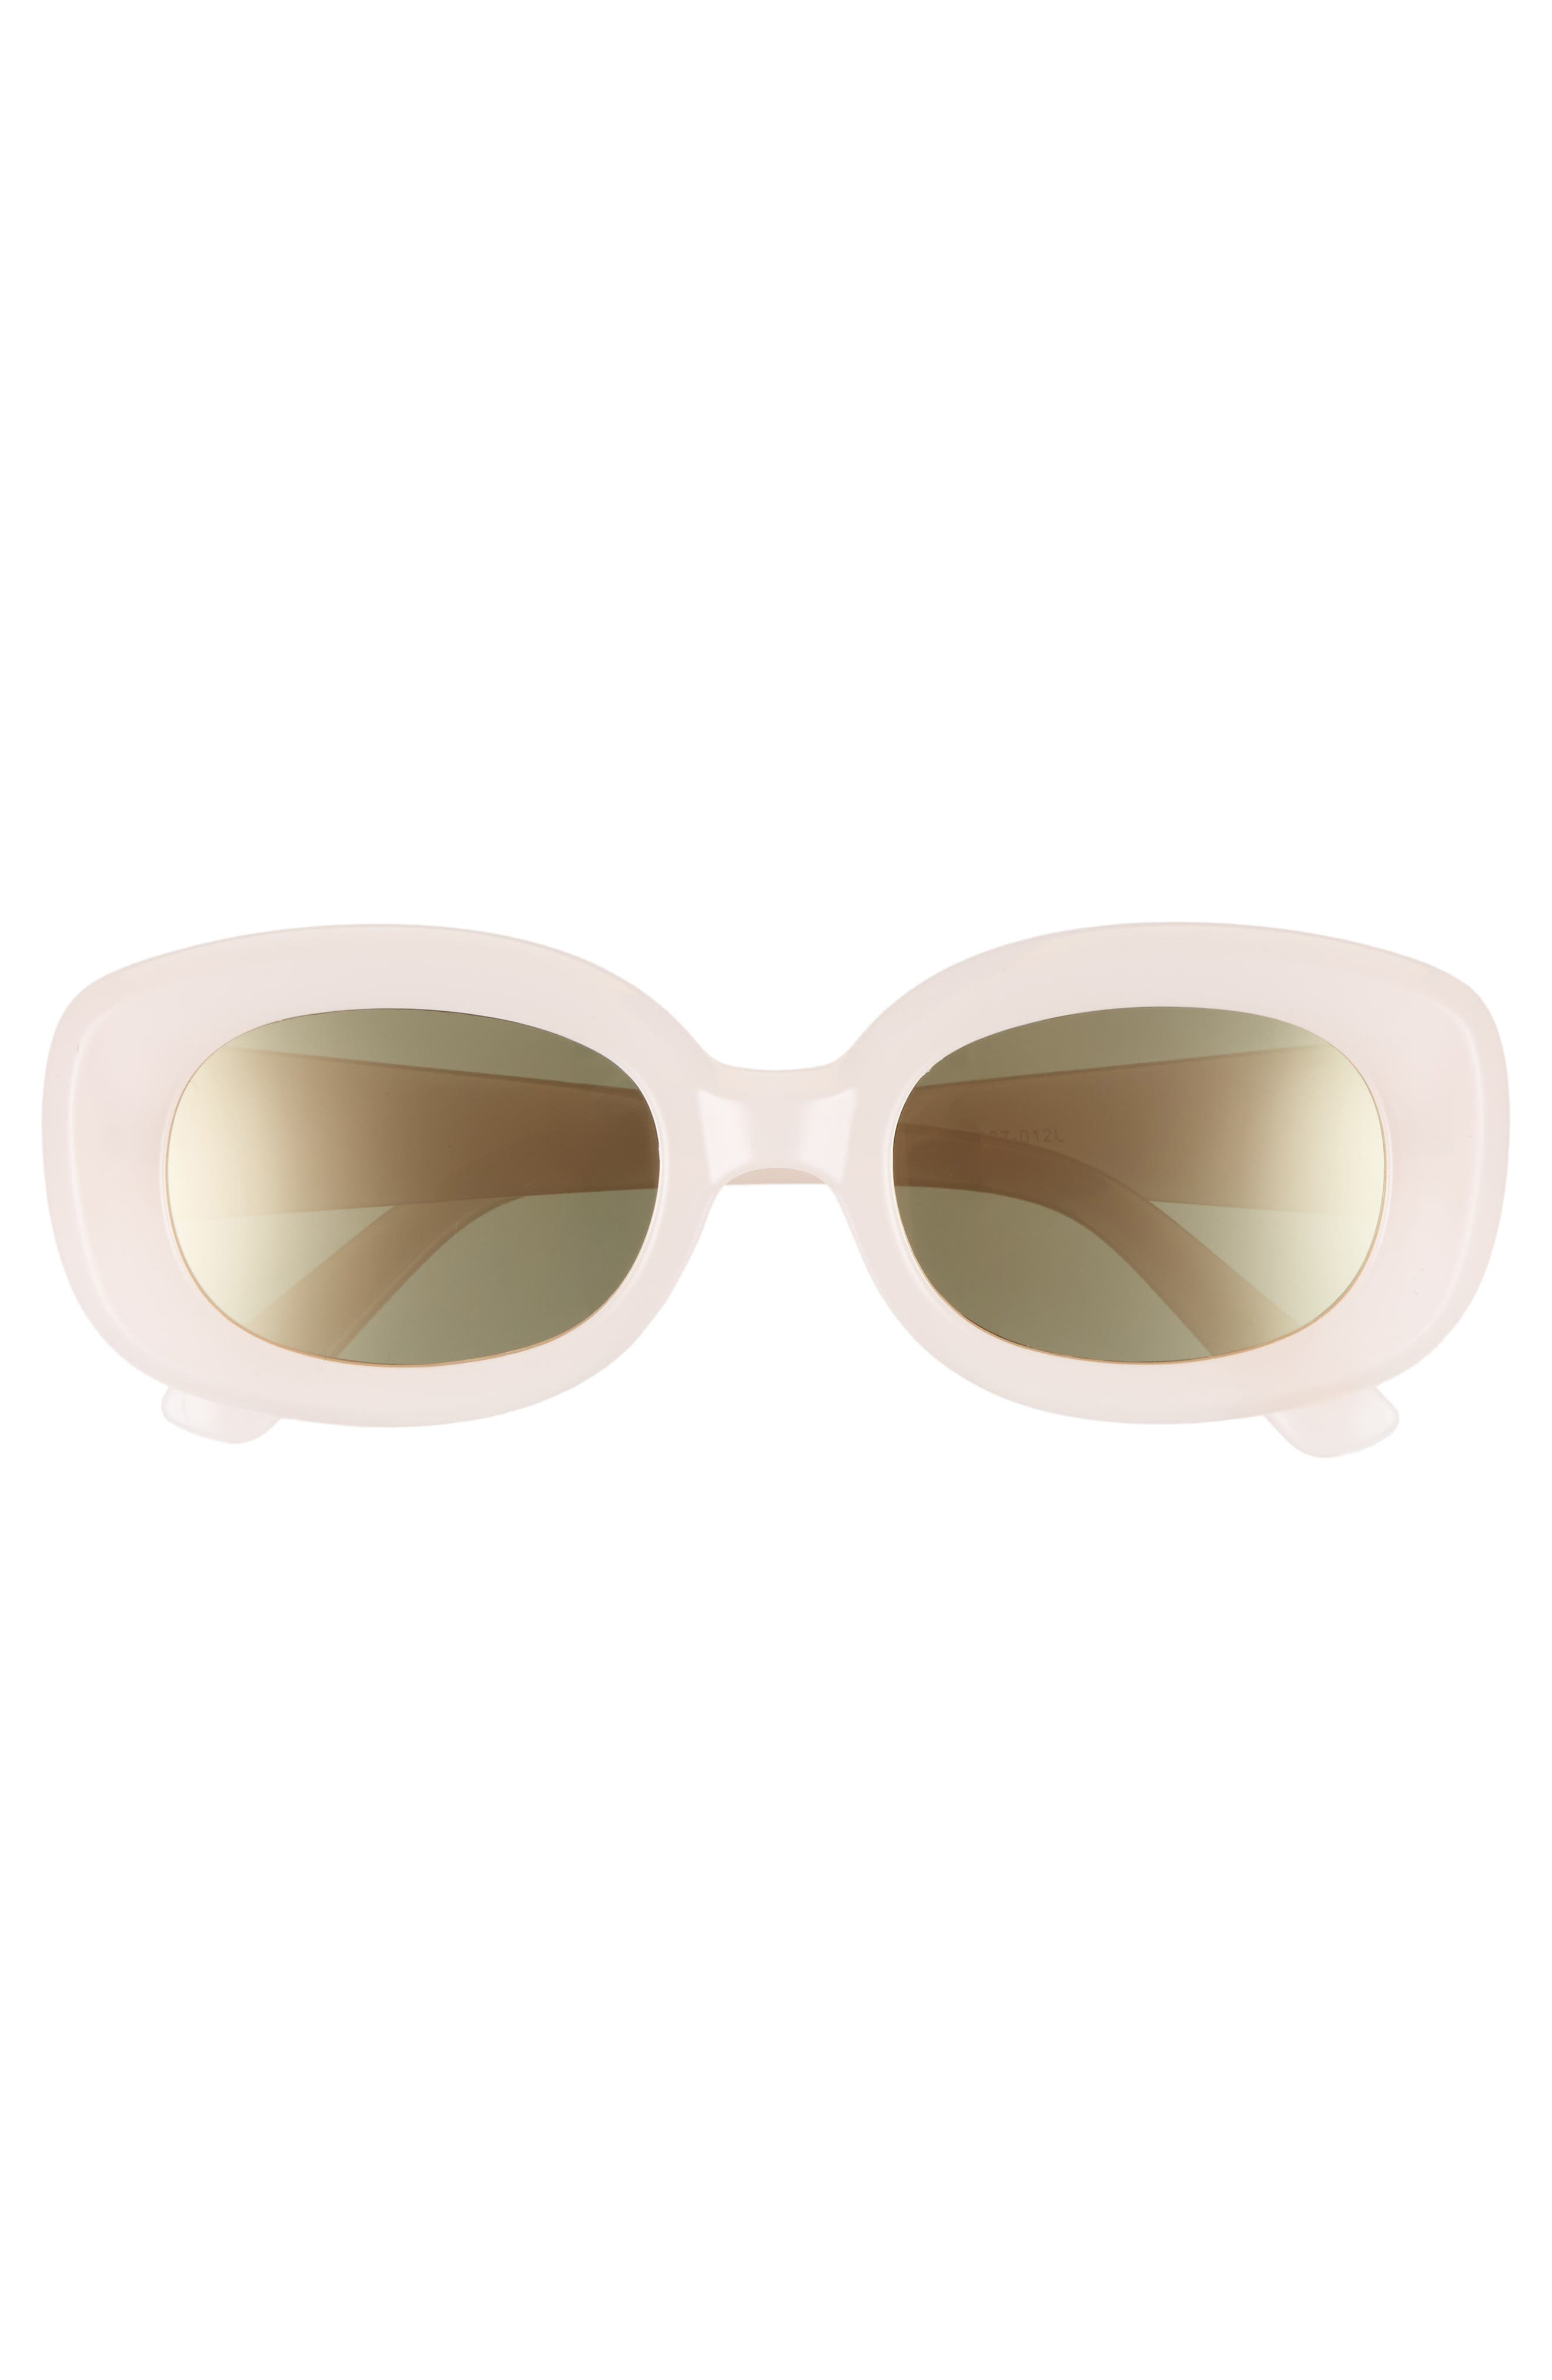 48mm Small Square Sunglasses,                             Alternate thumbnail 3, color,                             PINK